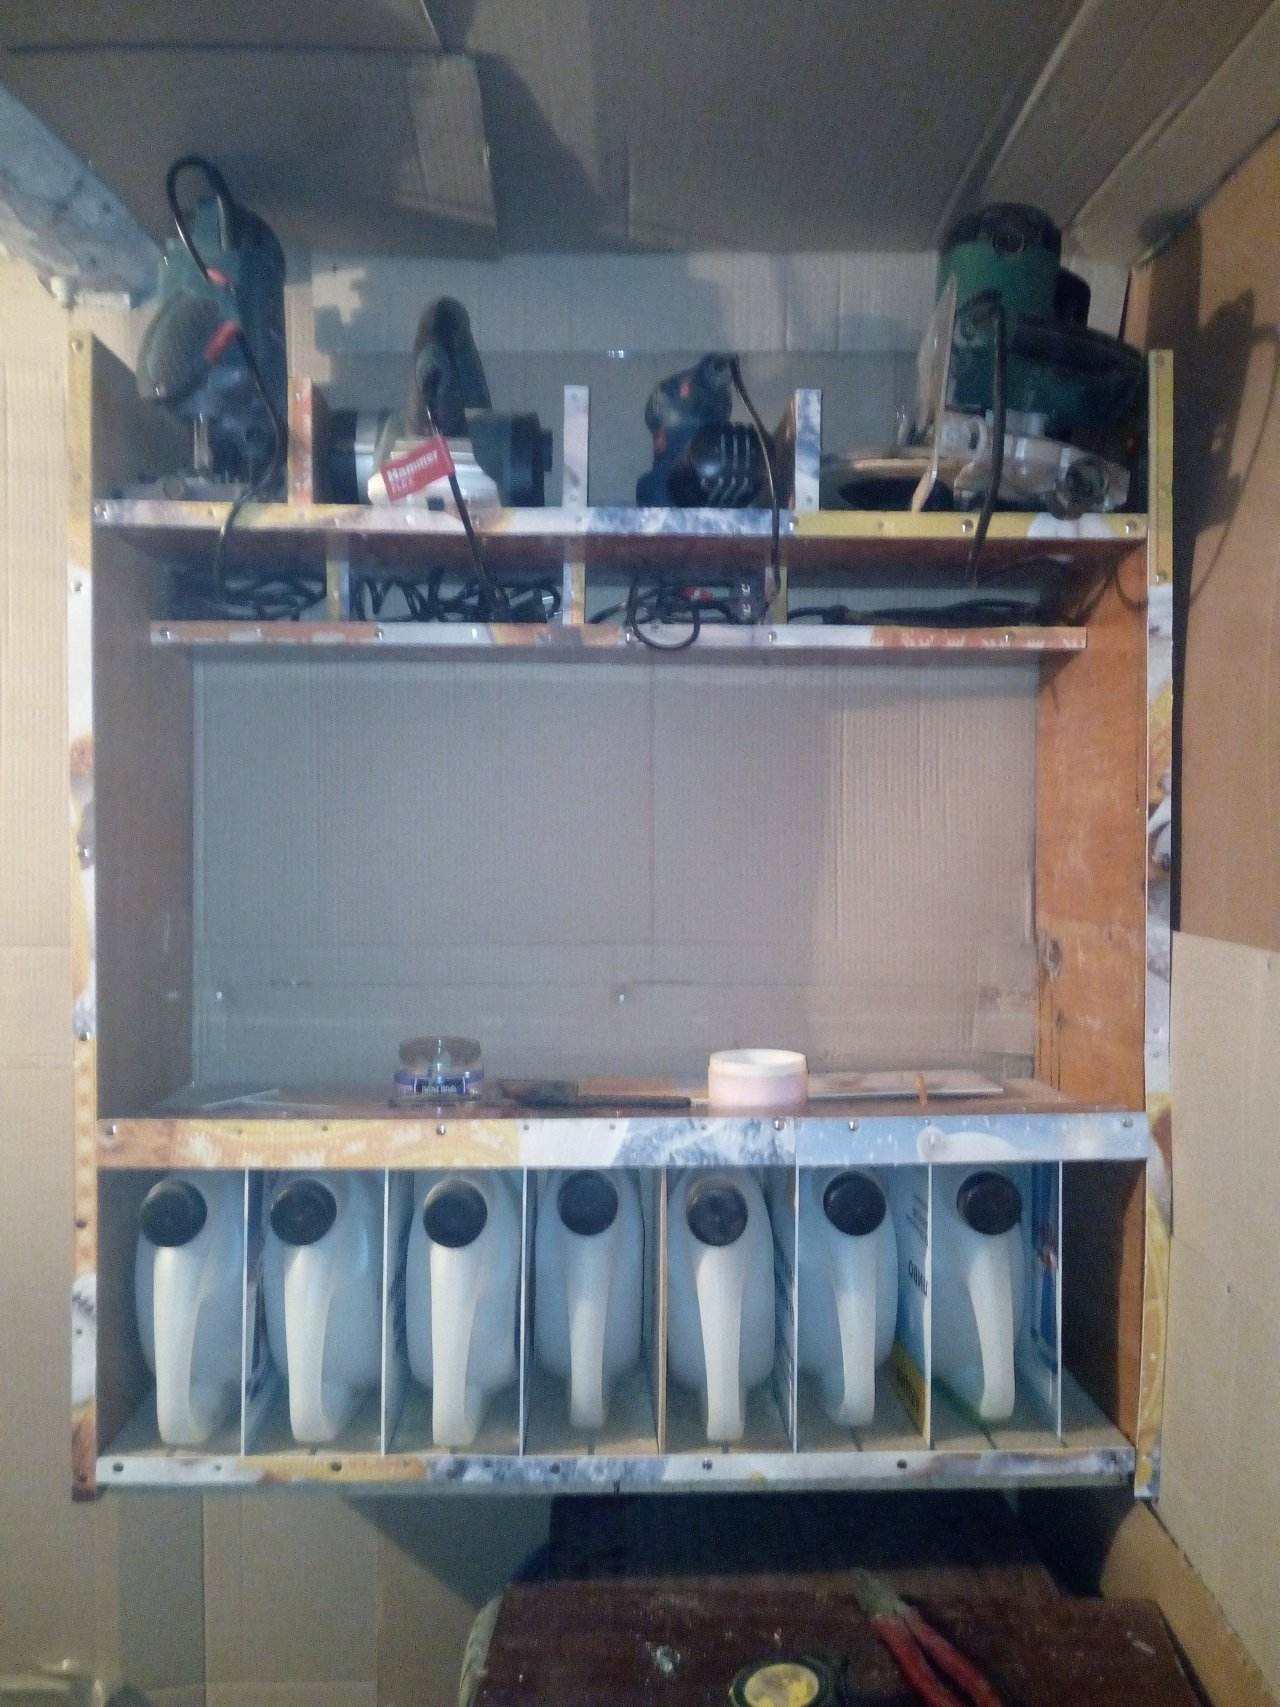 Hinged shelf-cabinet for storing power tools with boxes for hardware from cans